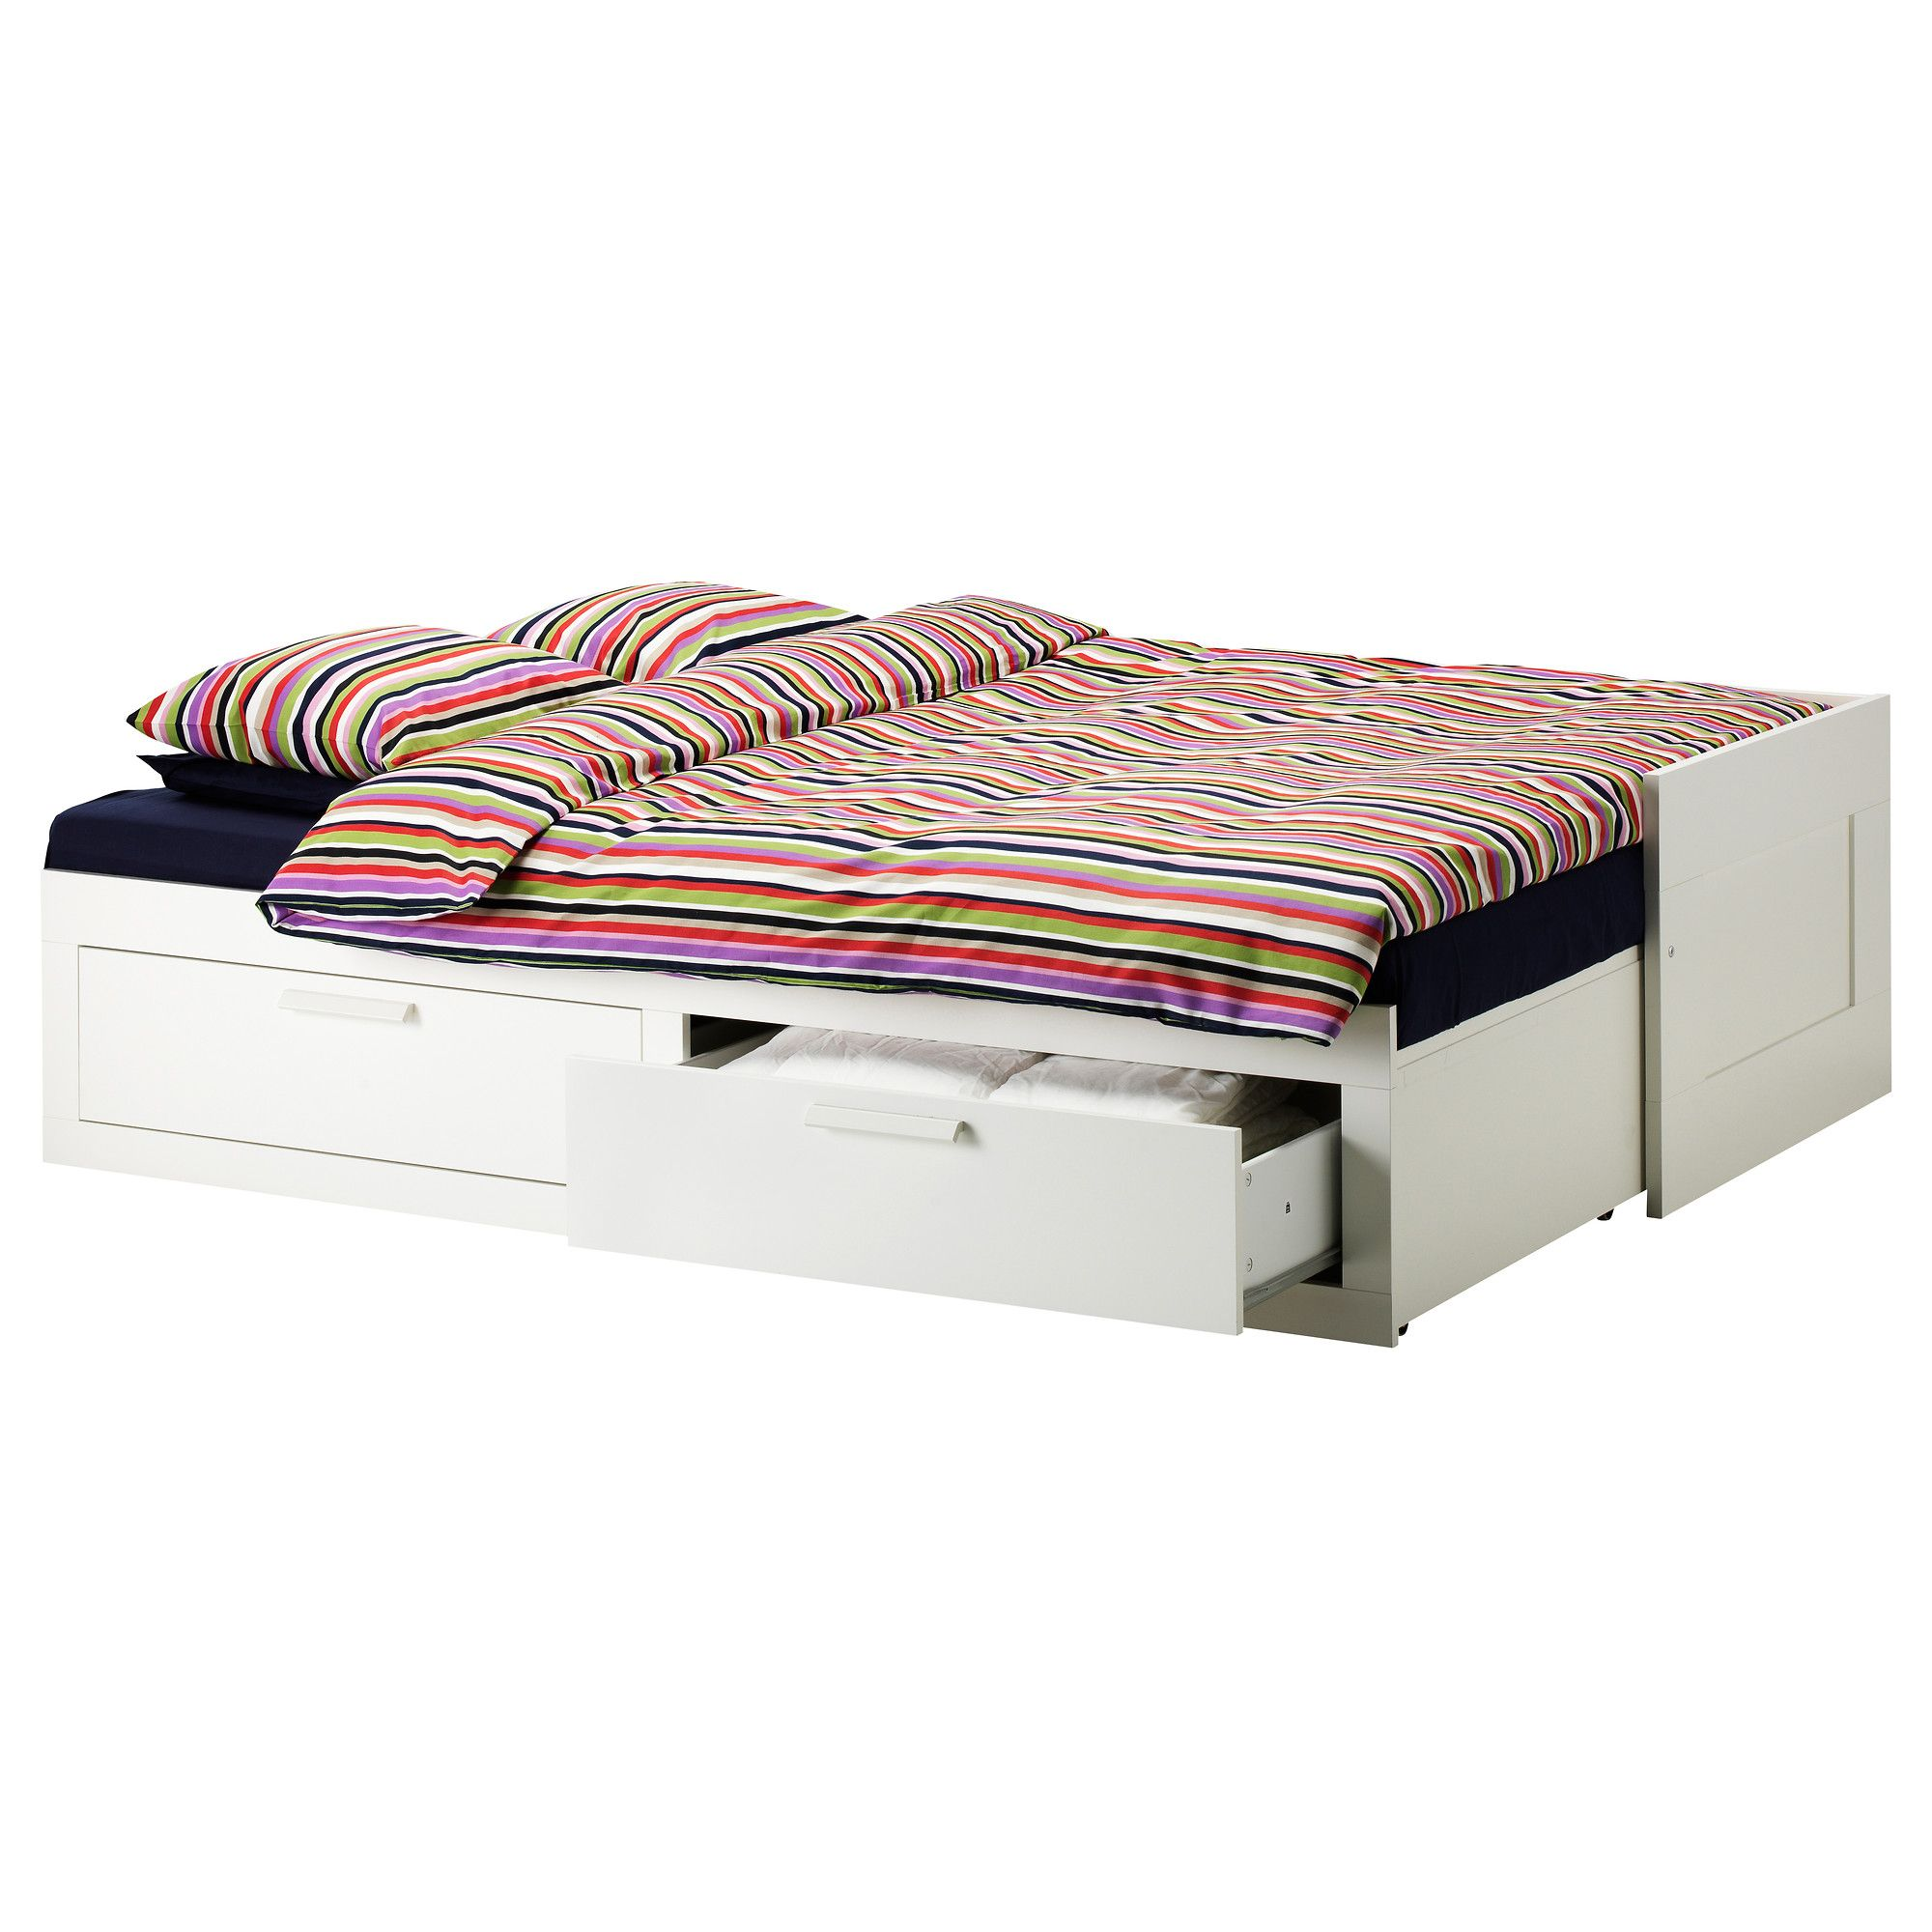 Lit Brimnes Ikea Ikea Brimnes Daybed With 2 Drawers 2 Mattresses White